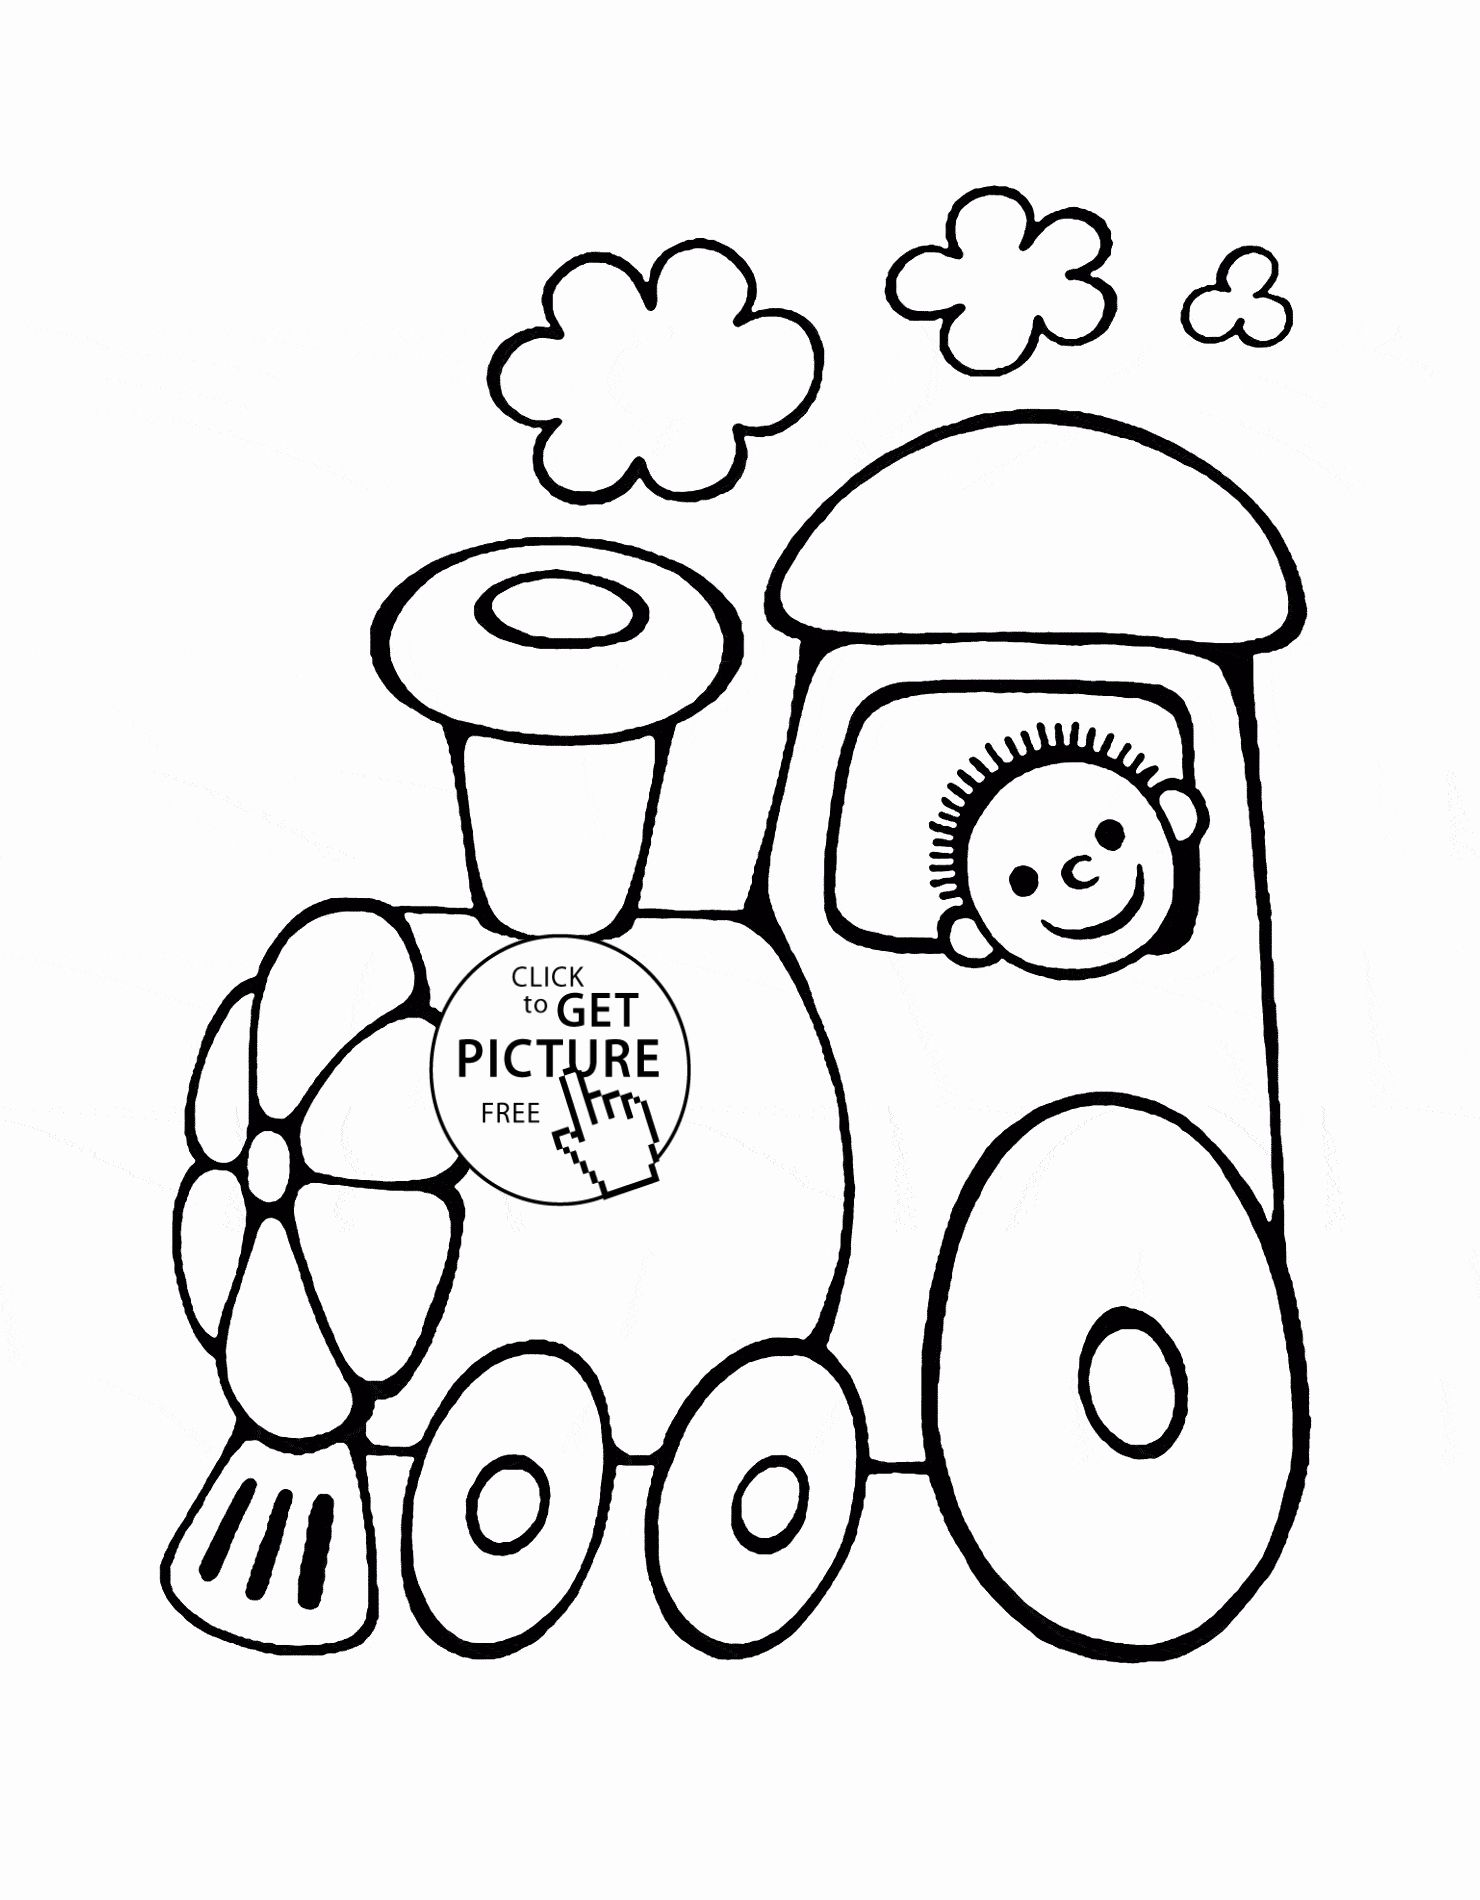 Transport Coloring Pages Free Printable In 2020 Train Coloring